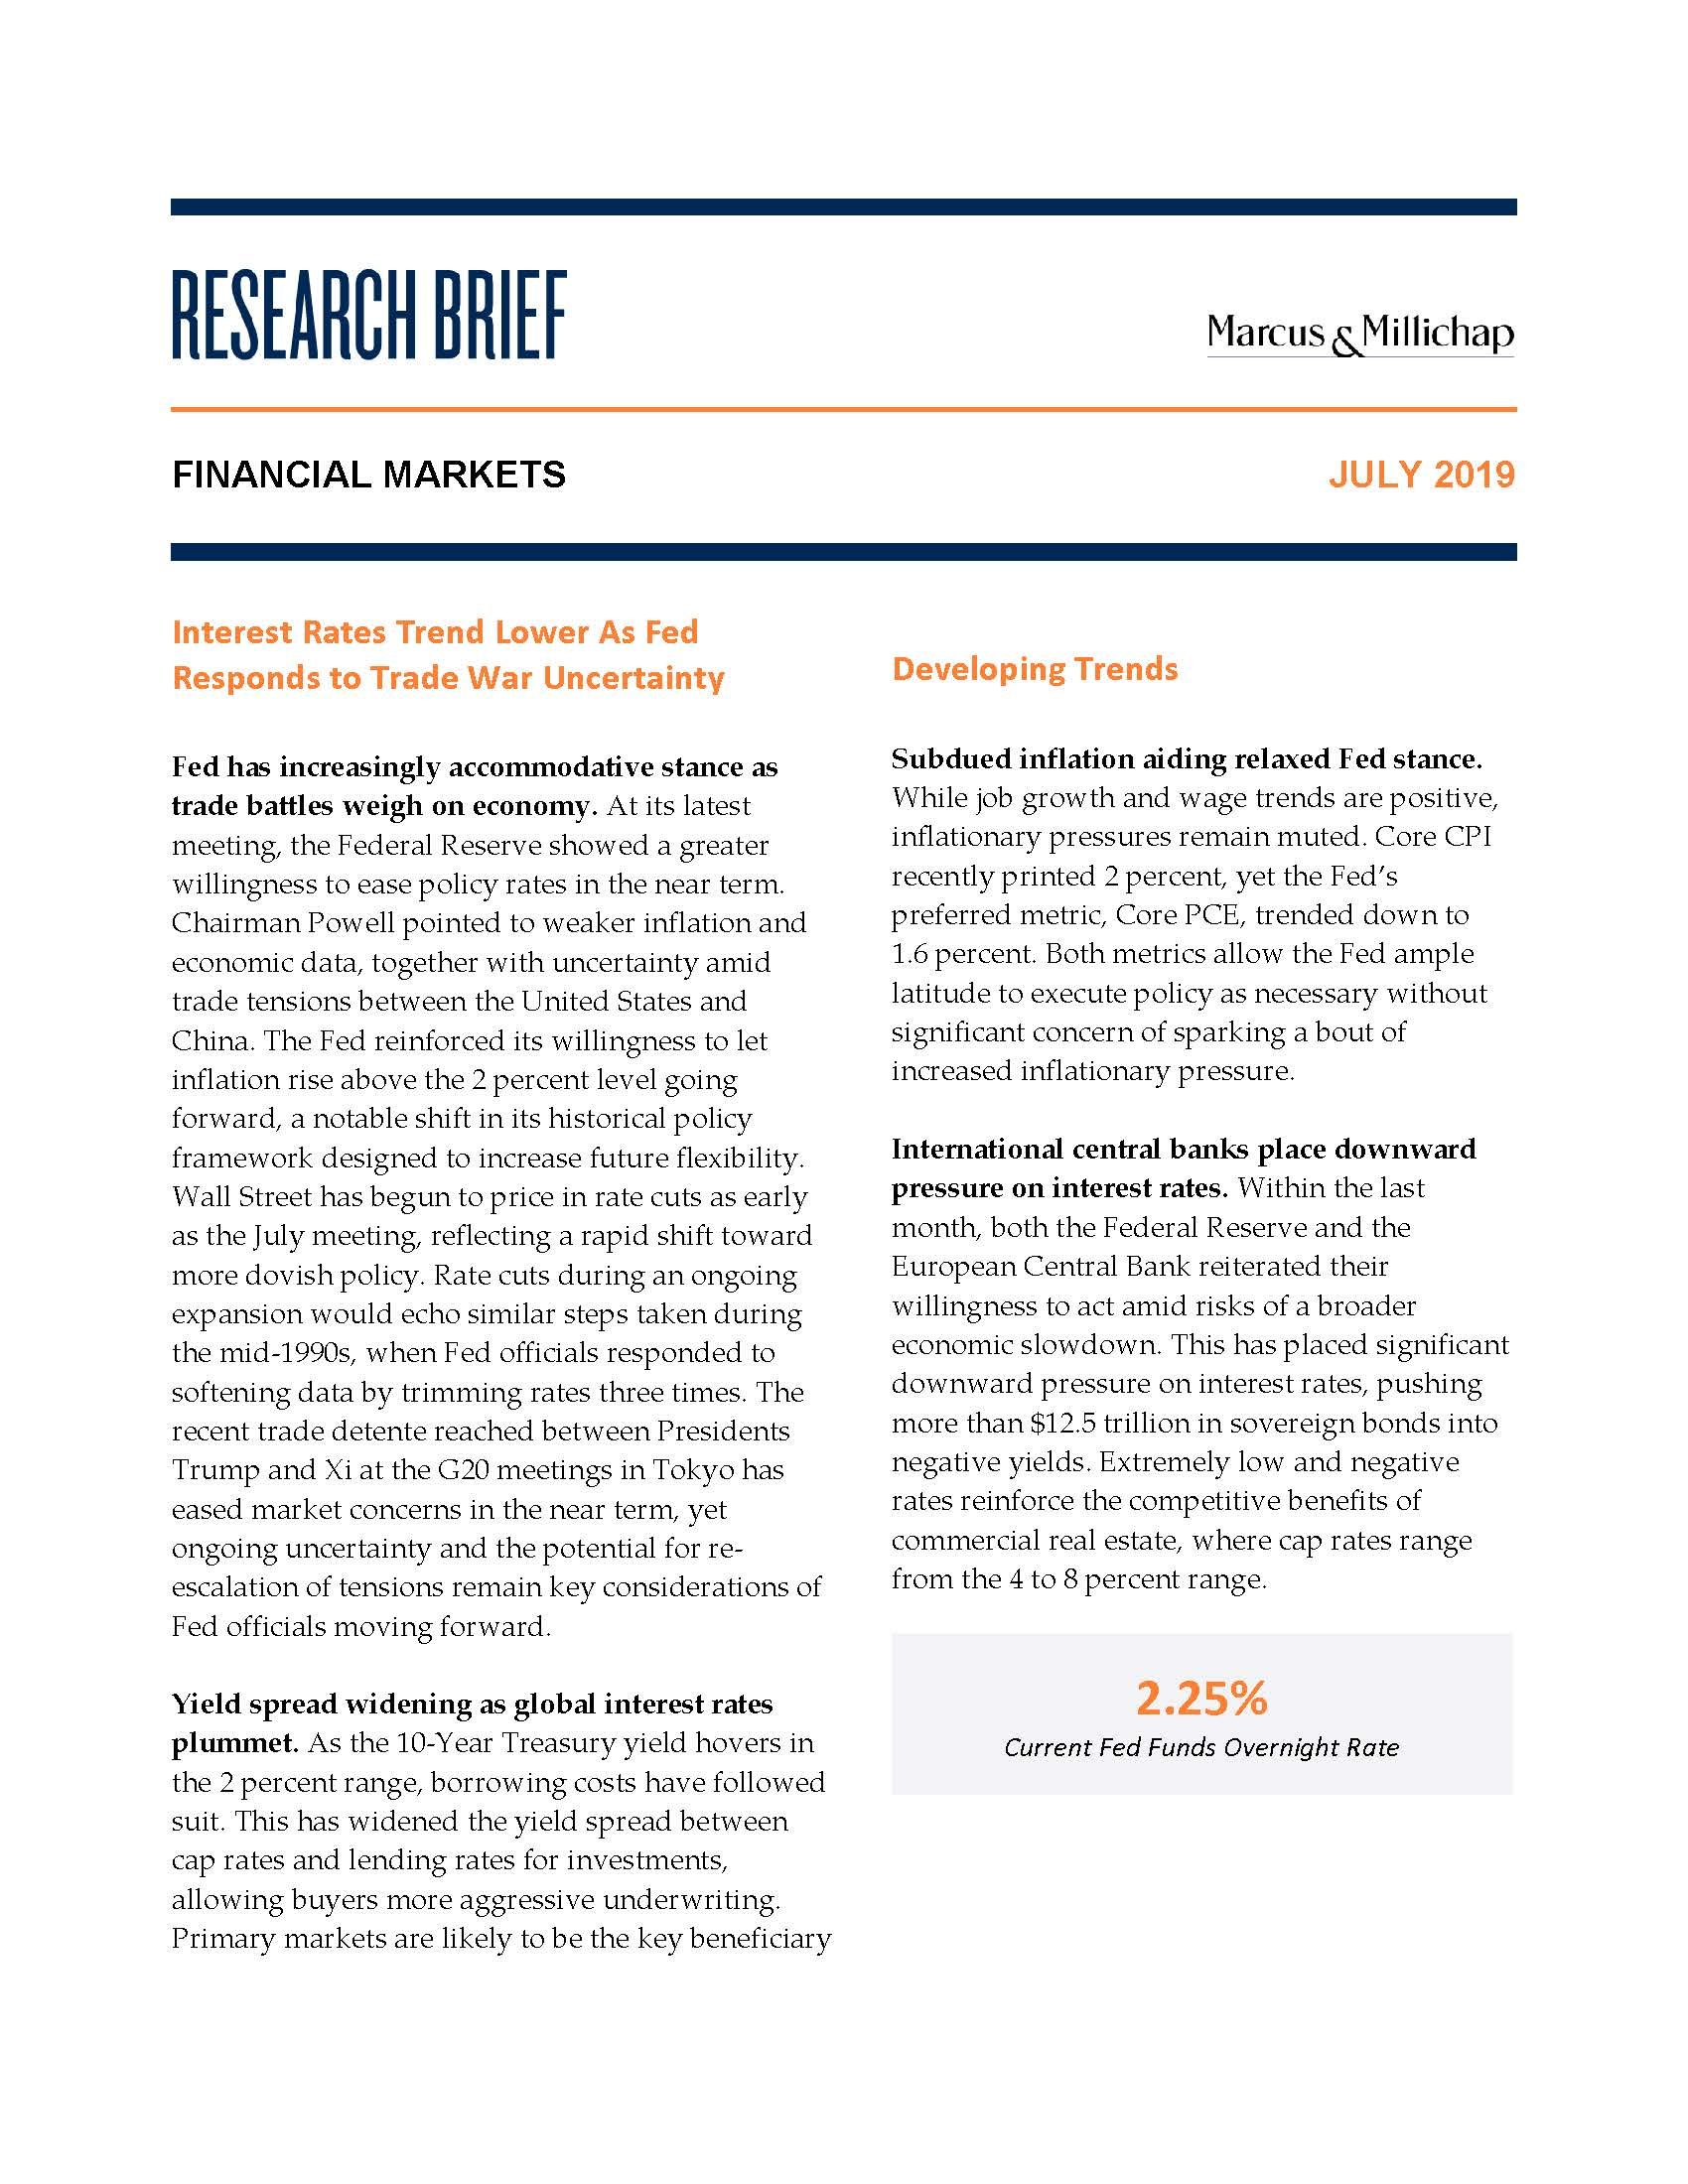 Research Brief - July 2019Financial Markets - Fed has increasingly accommodative stance as trade battles weigh on economy. At its latest meeting, the Federal Reserve showed a greater willingness to ease policy rates in the near term.